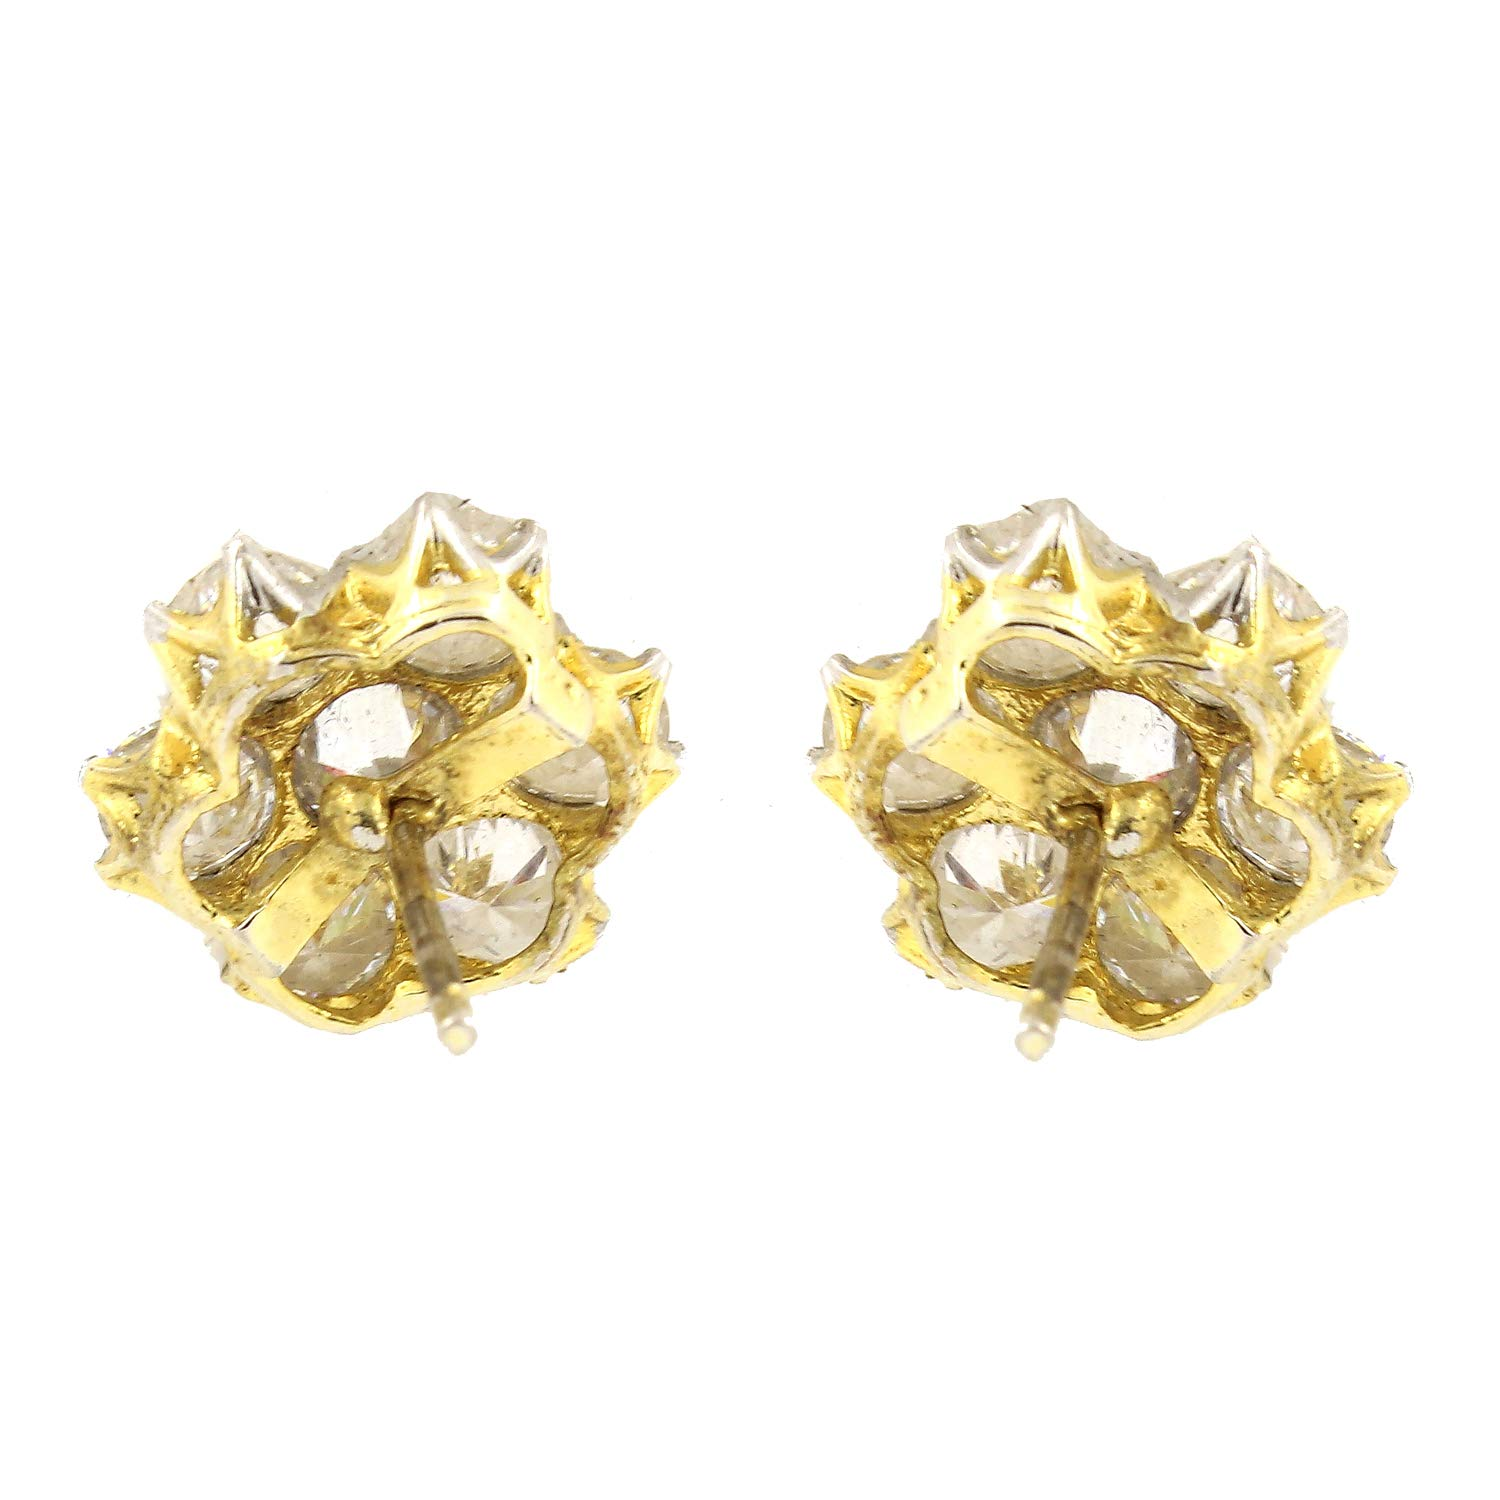 Be You Elegant White Color Cubic Zirconia Diamond Look Gold Plated Flower Shape Stud Earrings for Women